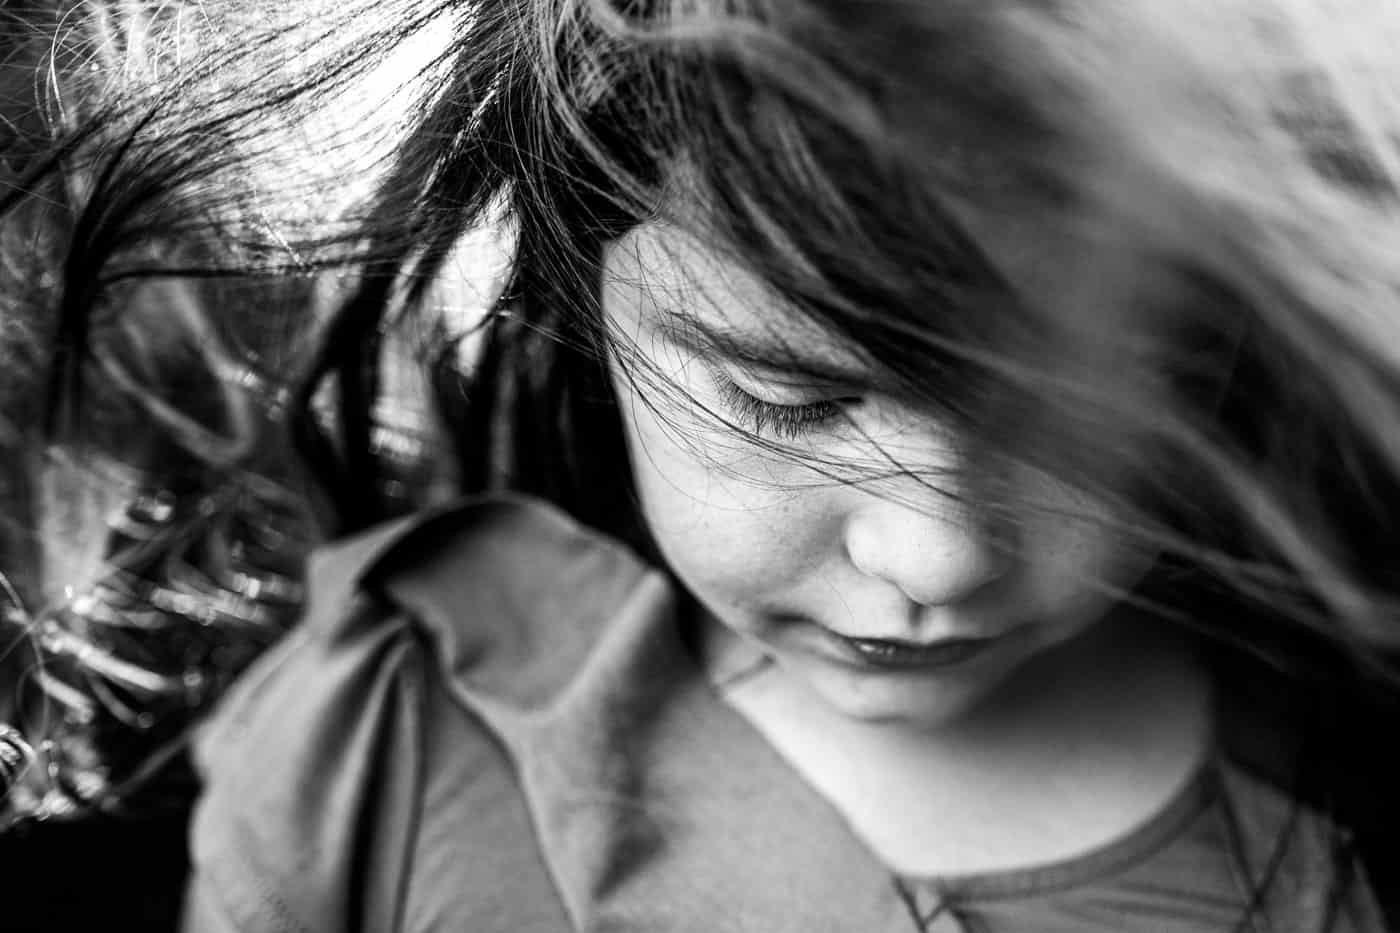 Close up of young girl with her hair blowing in the wind